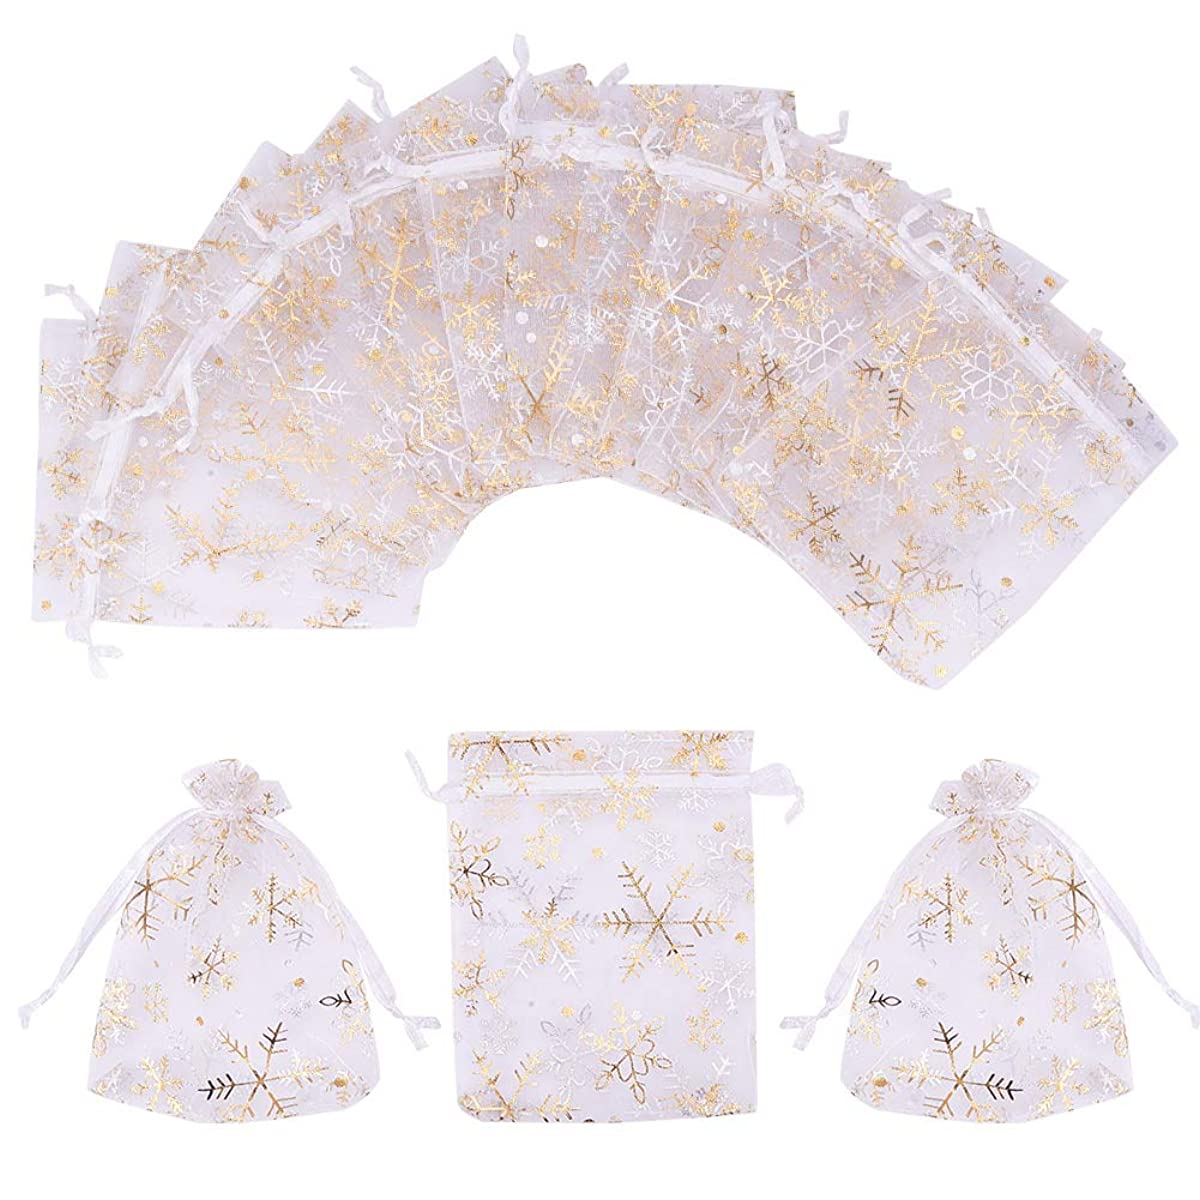 PH PandaHall 100 PCS 4 x 4.7 Inches Golden Snowflake Printed Bags Jewelry Pouch Bags Organza Drawstring Pouches Wedding Favors Candy Bags, White